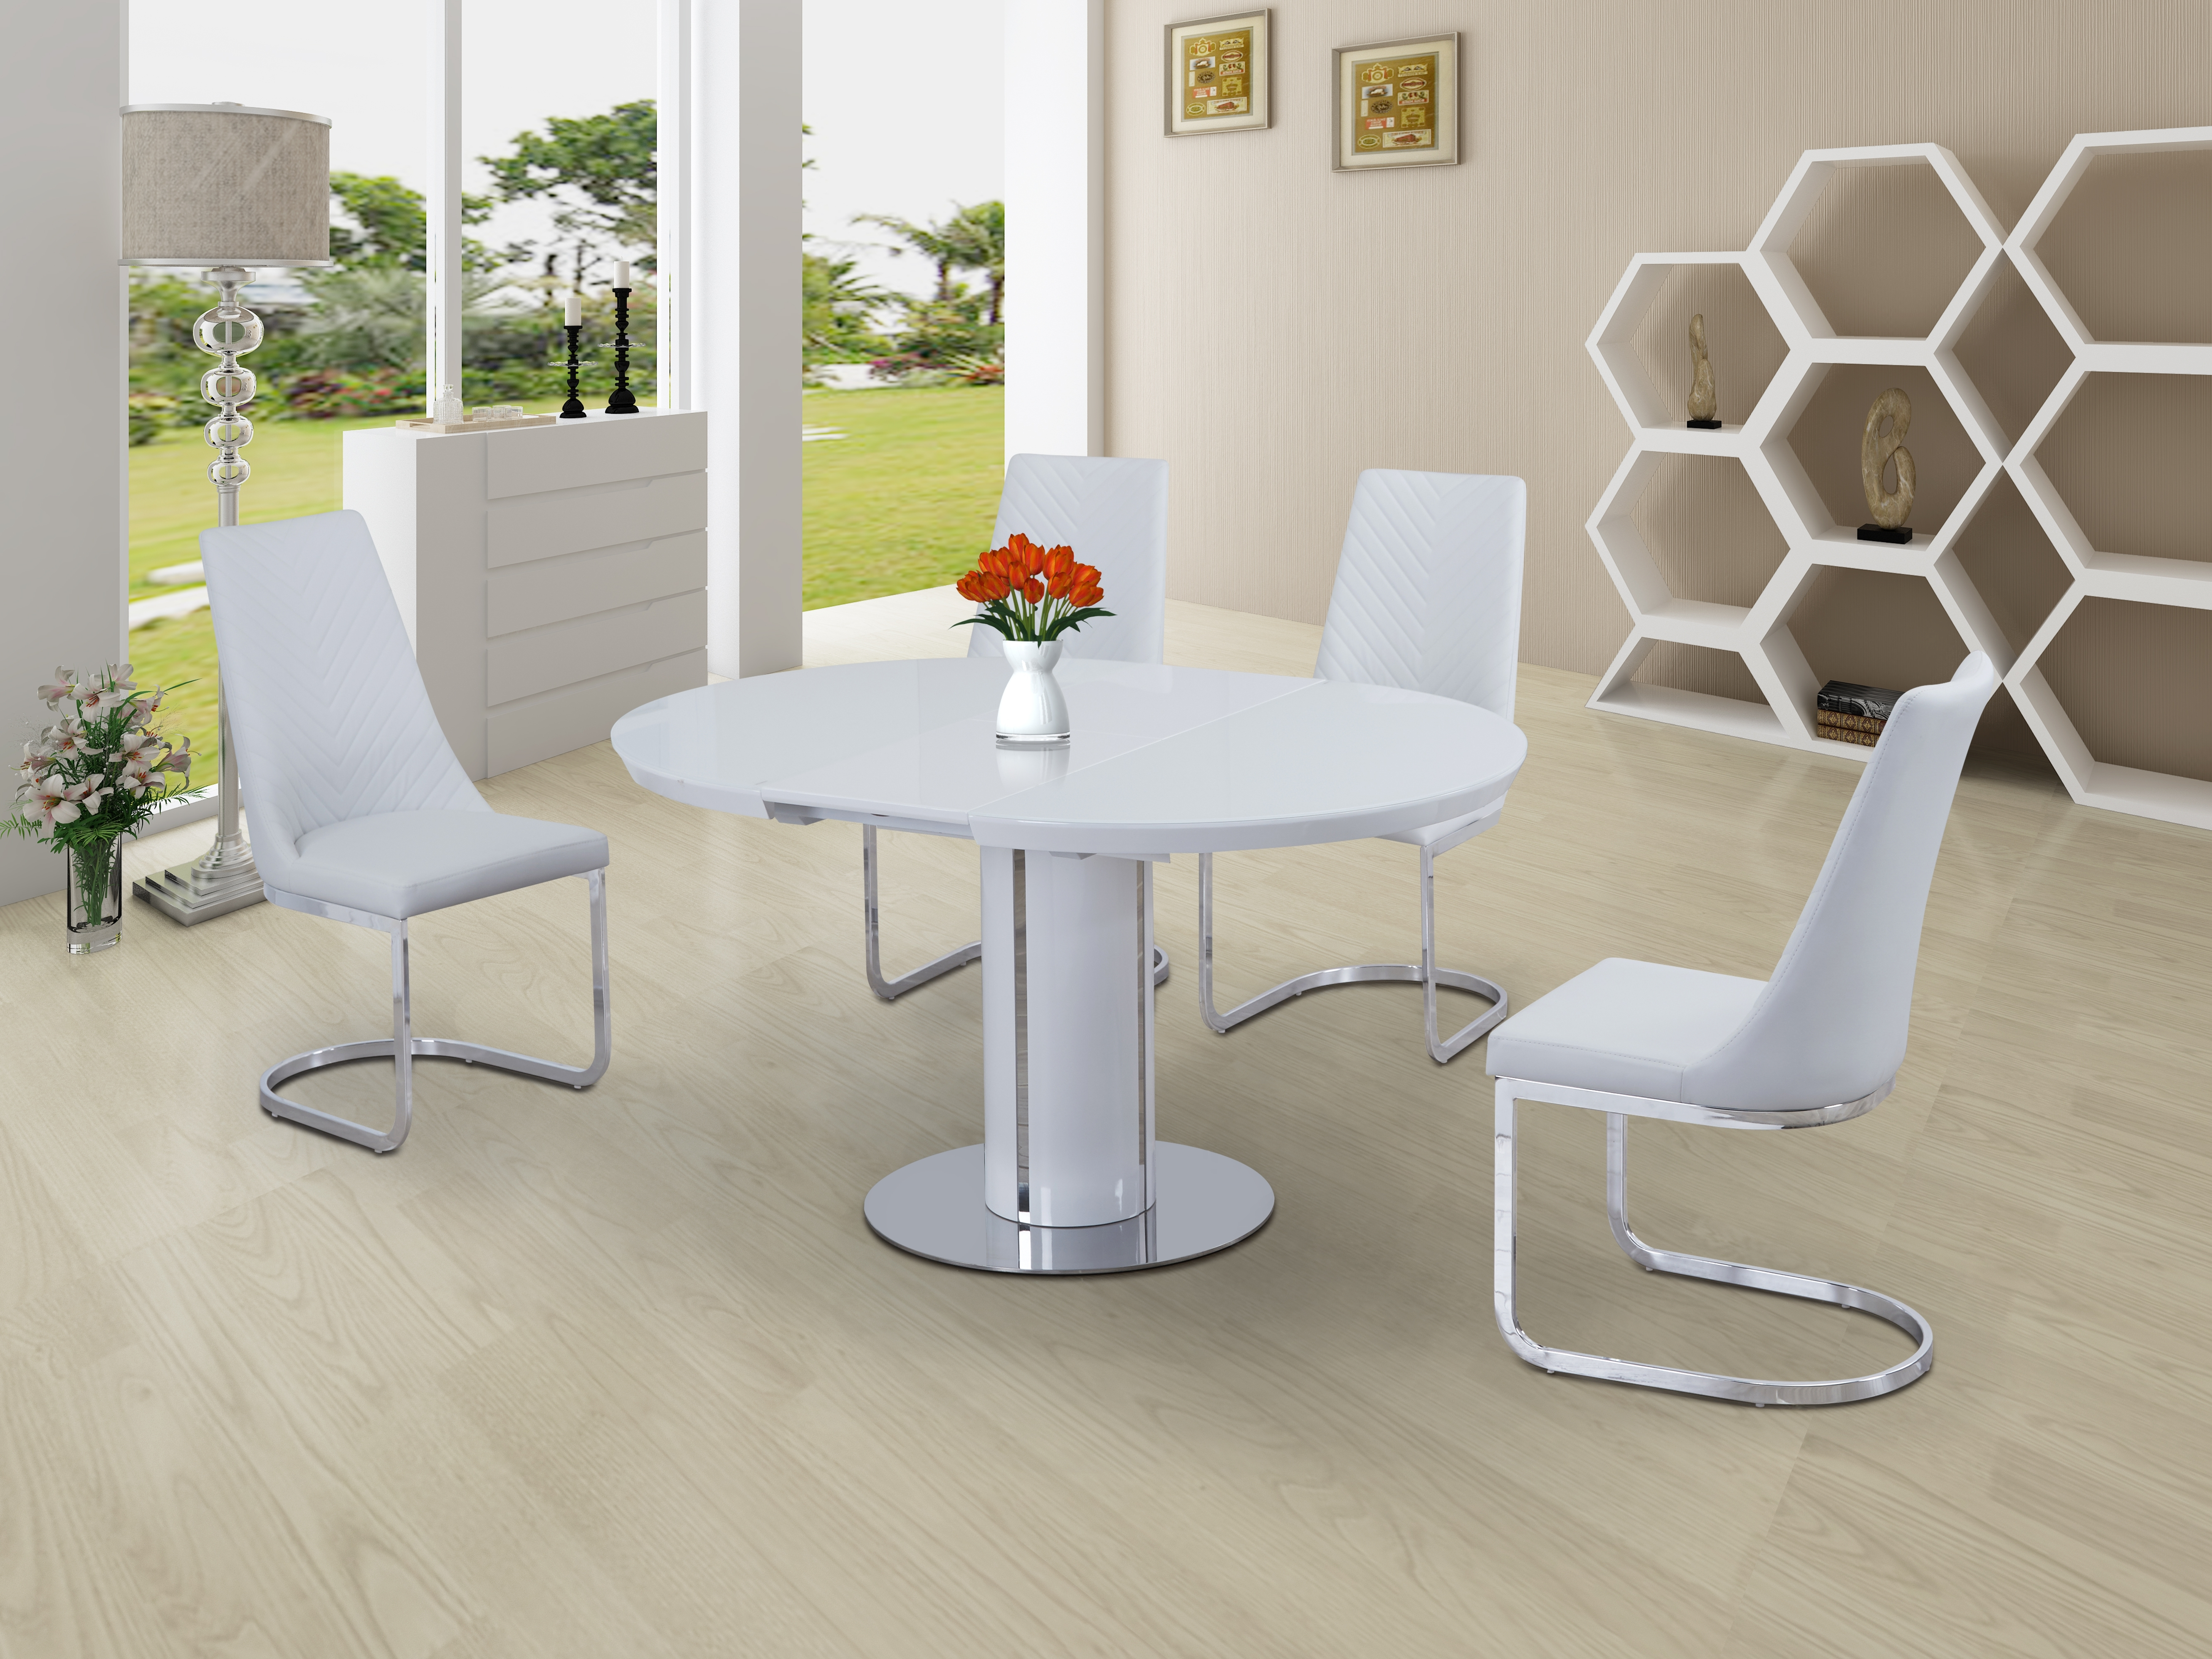 White Extending Dining Tables And Chairs Intended For Best And Newest Orban Round White Extending Dining Table (View 19 of 25)